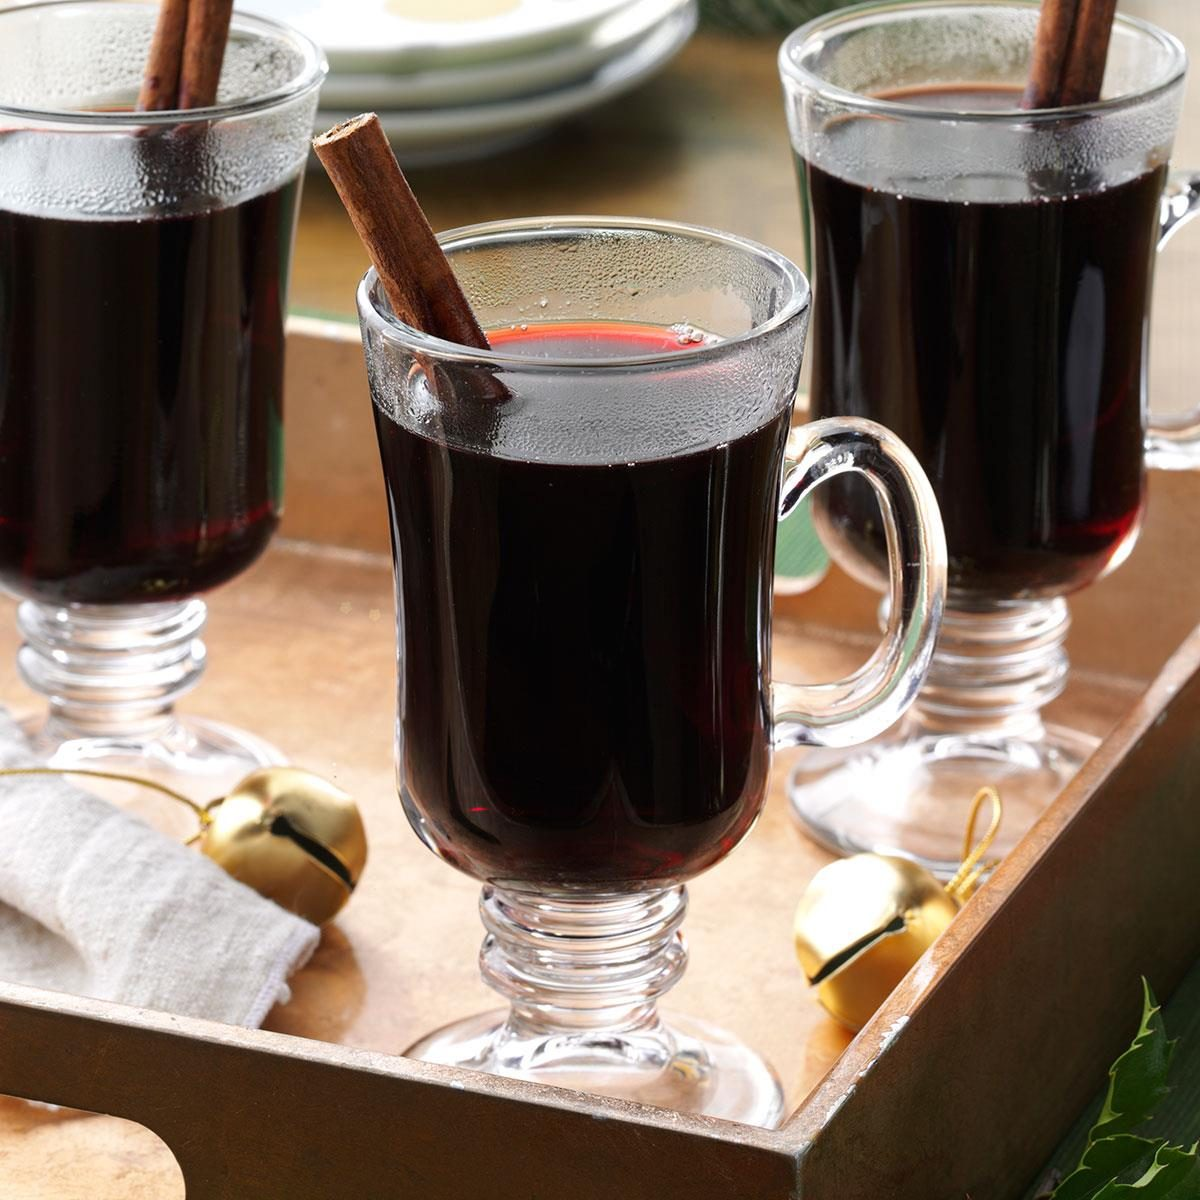 Spiced mull wine